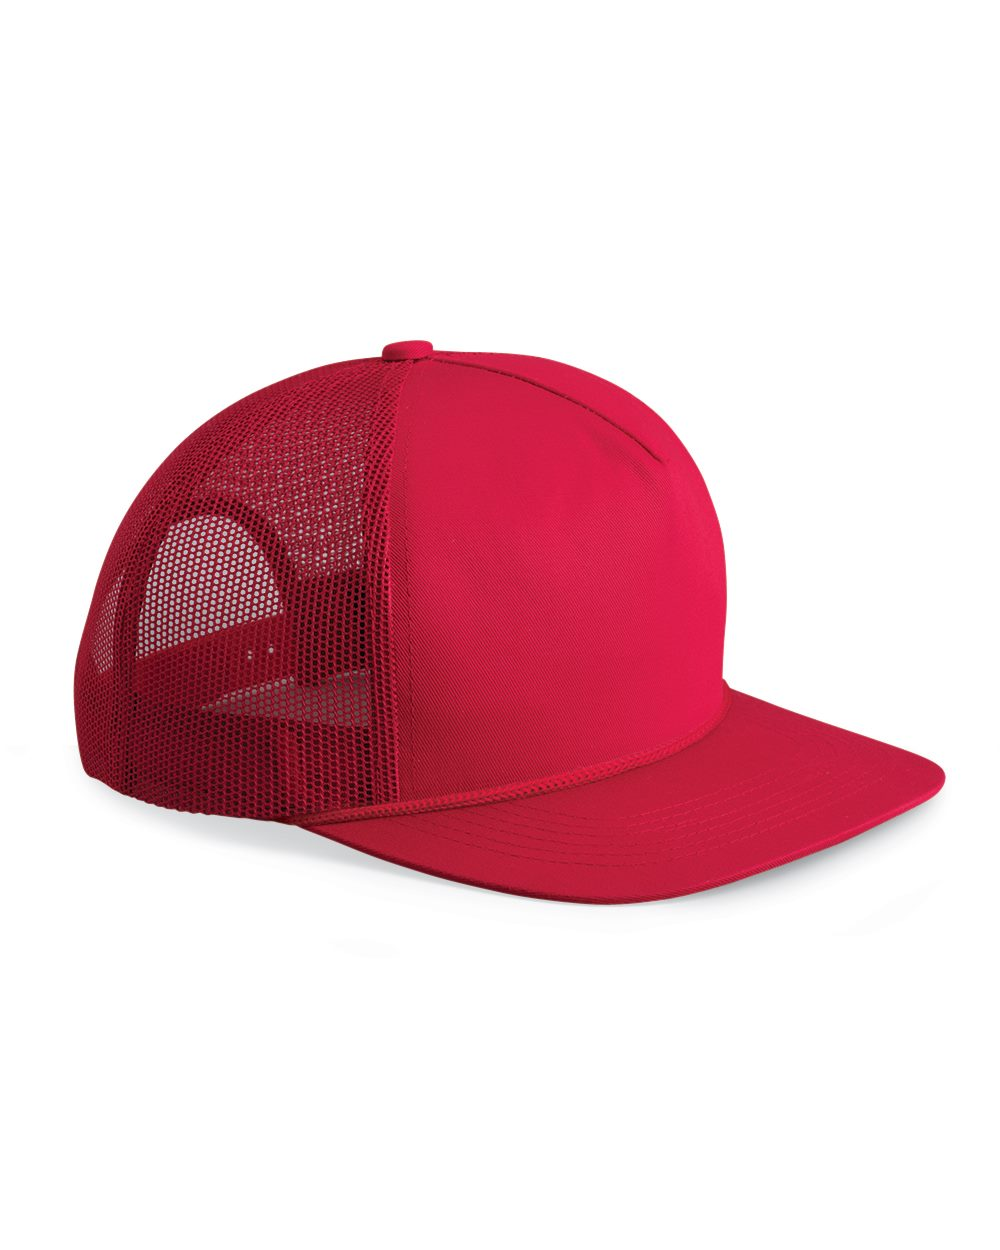 Valucap 8804H Valucap 5-Panel Trucker Cap